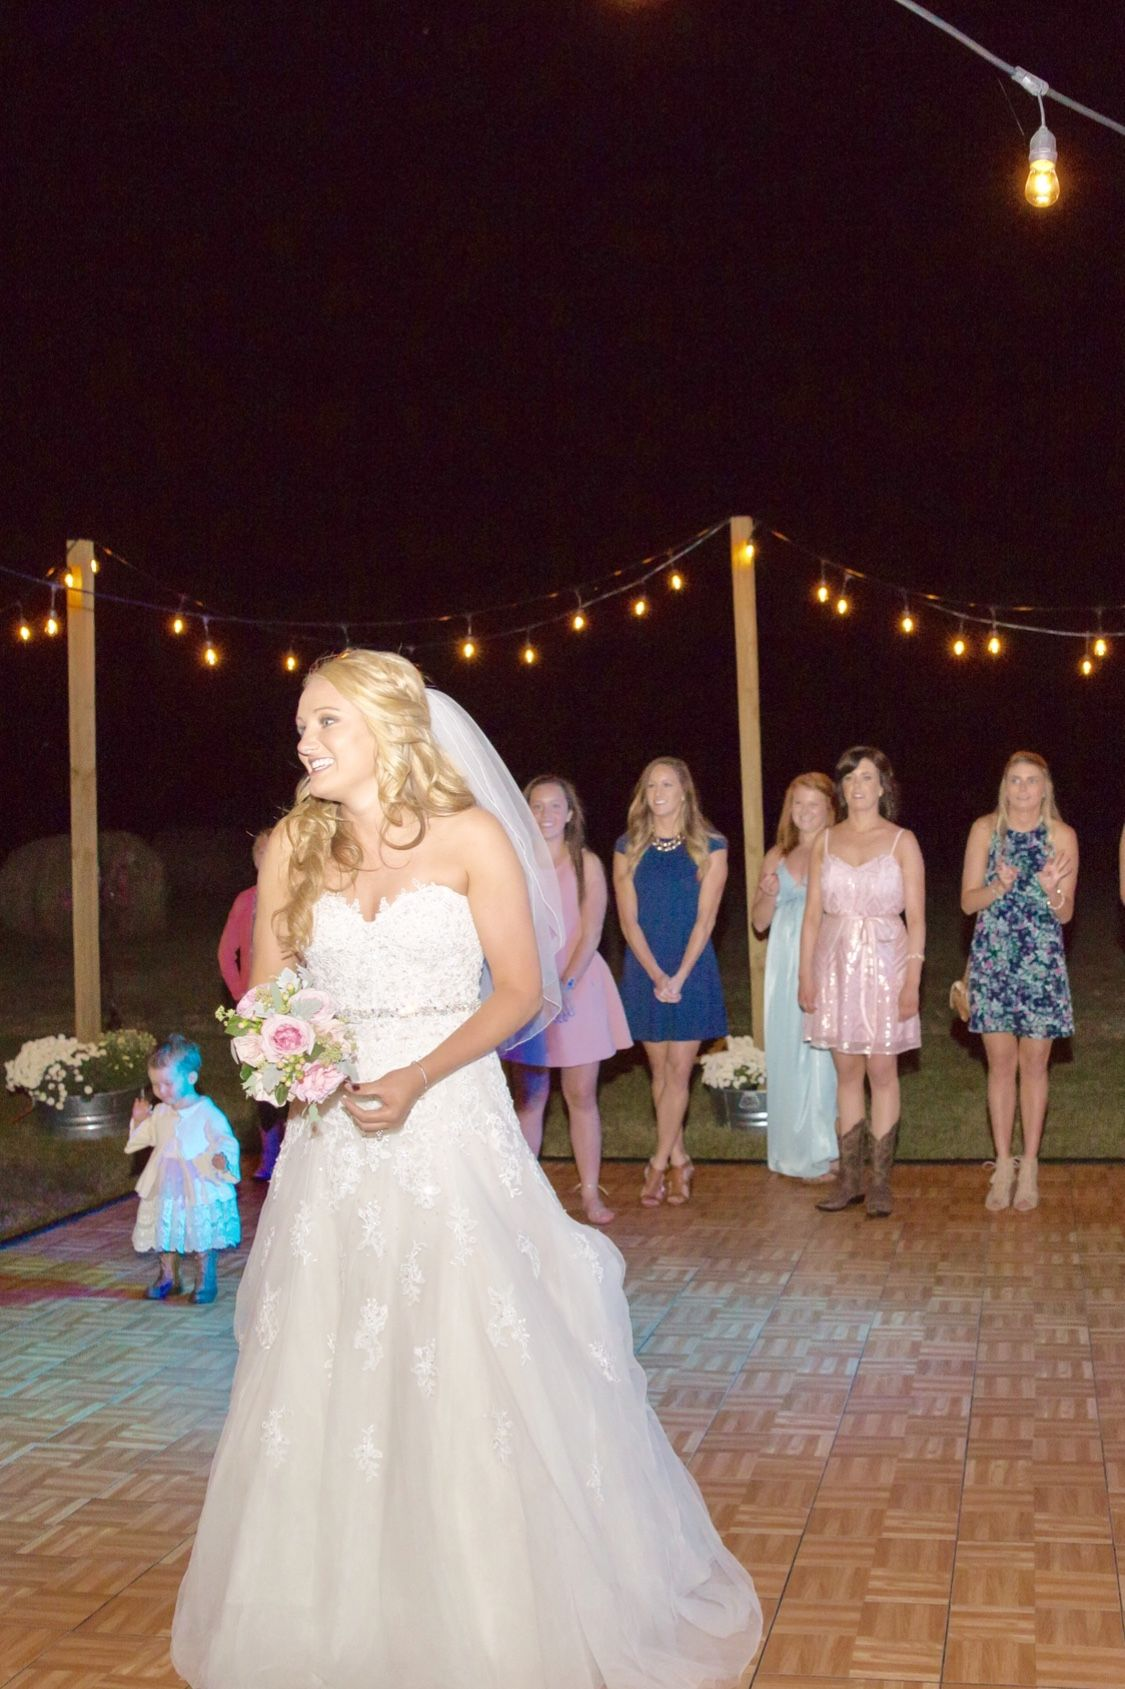 Tossing The Bouquet And Garter Wedding Tradition At So Many Weddings Young Wedding Wedding Attire Guest Wedding